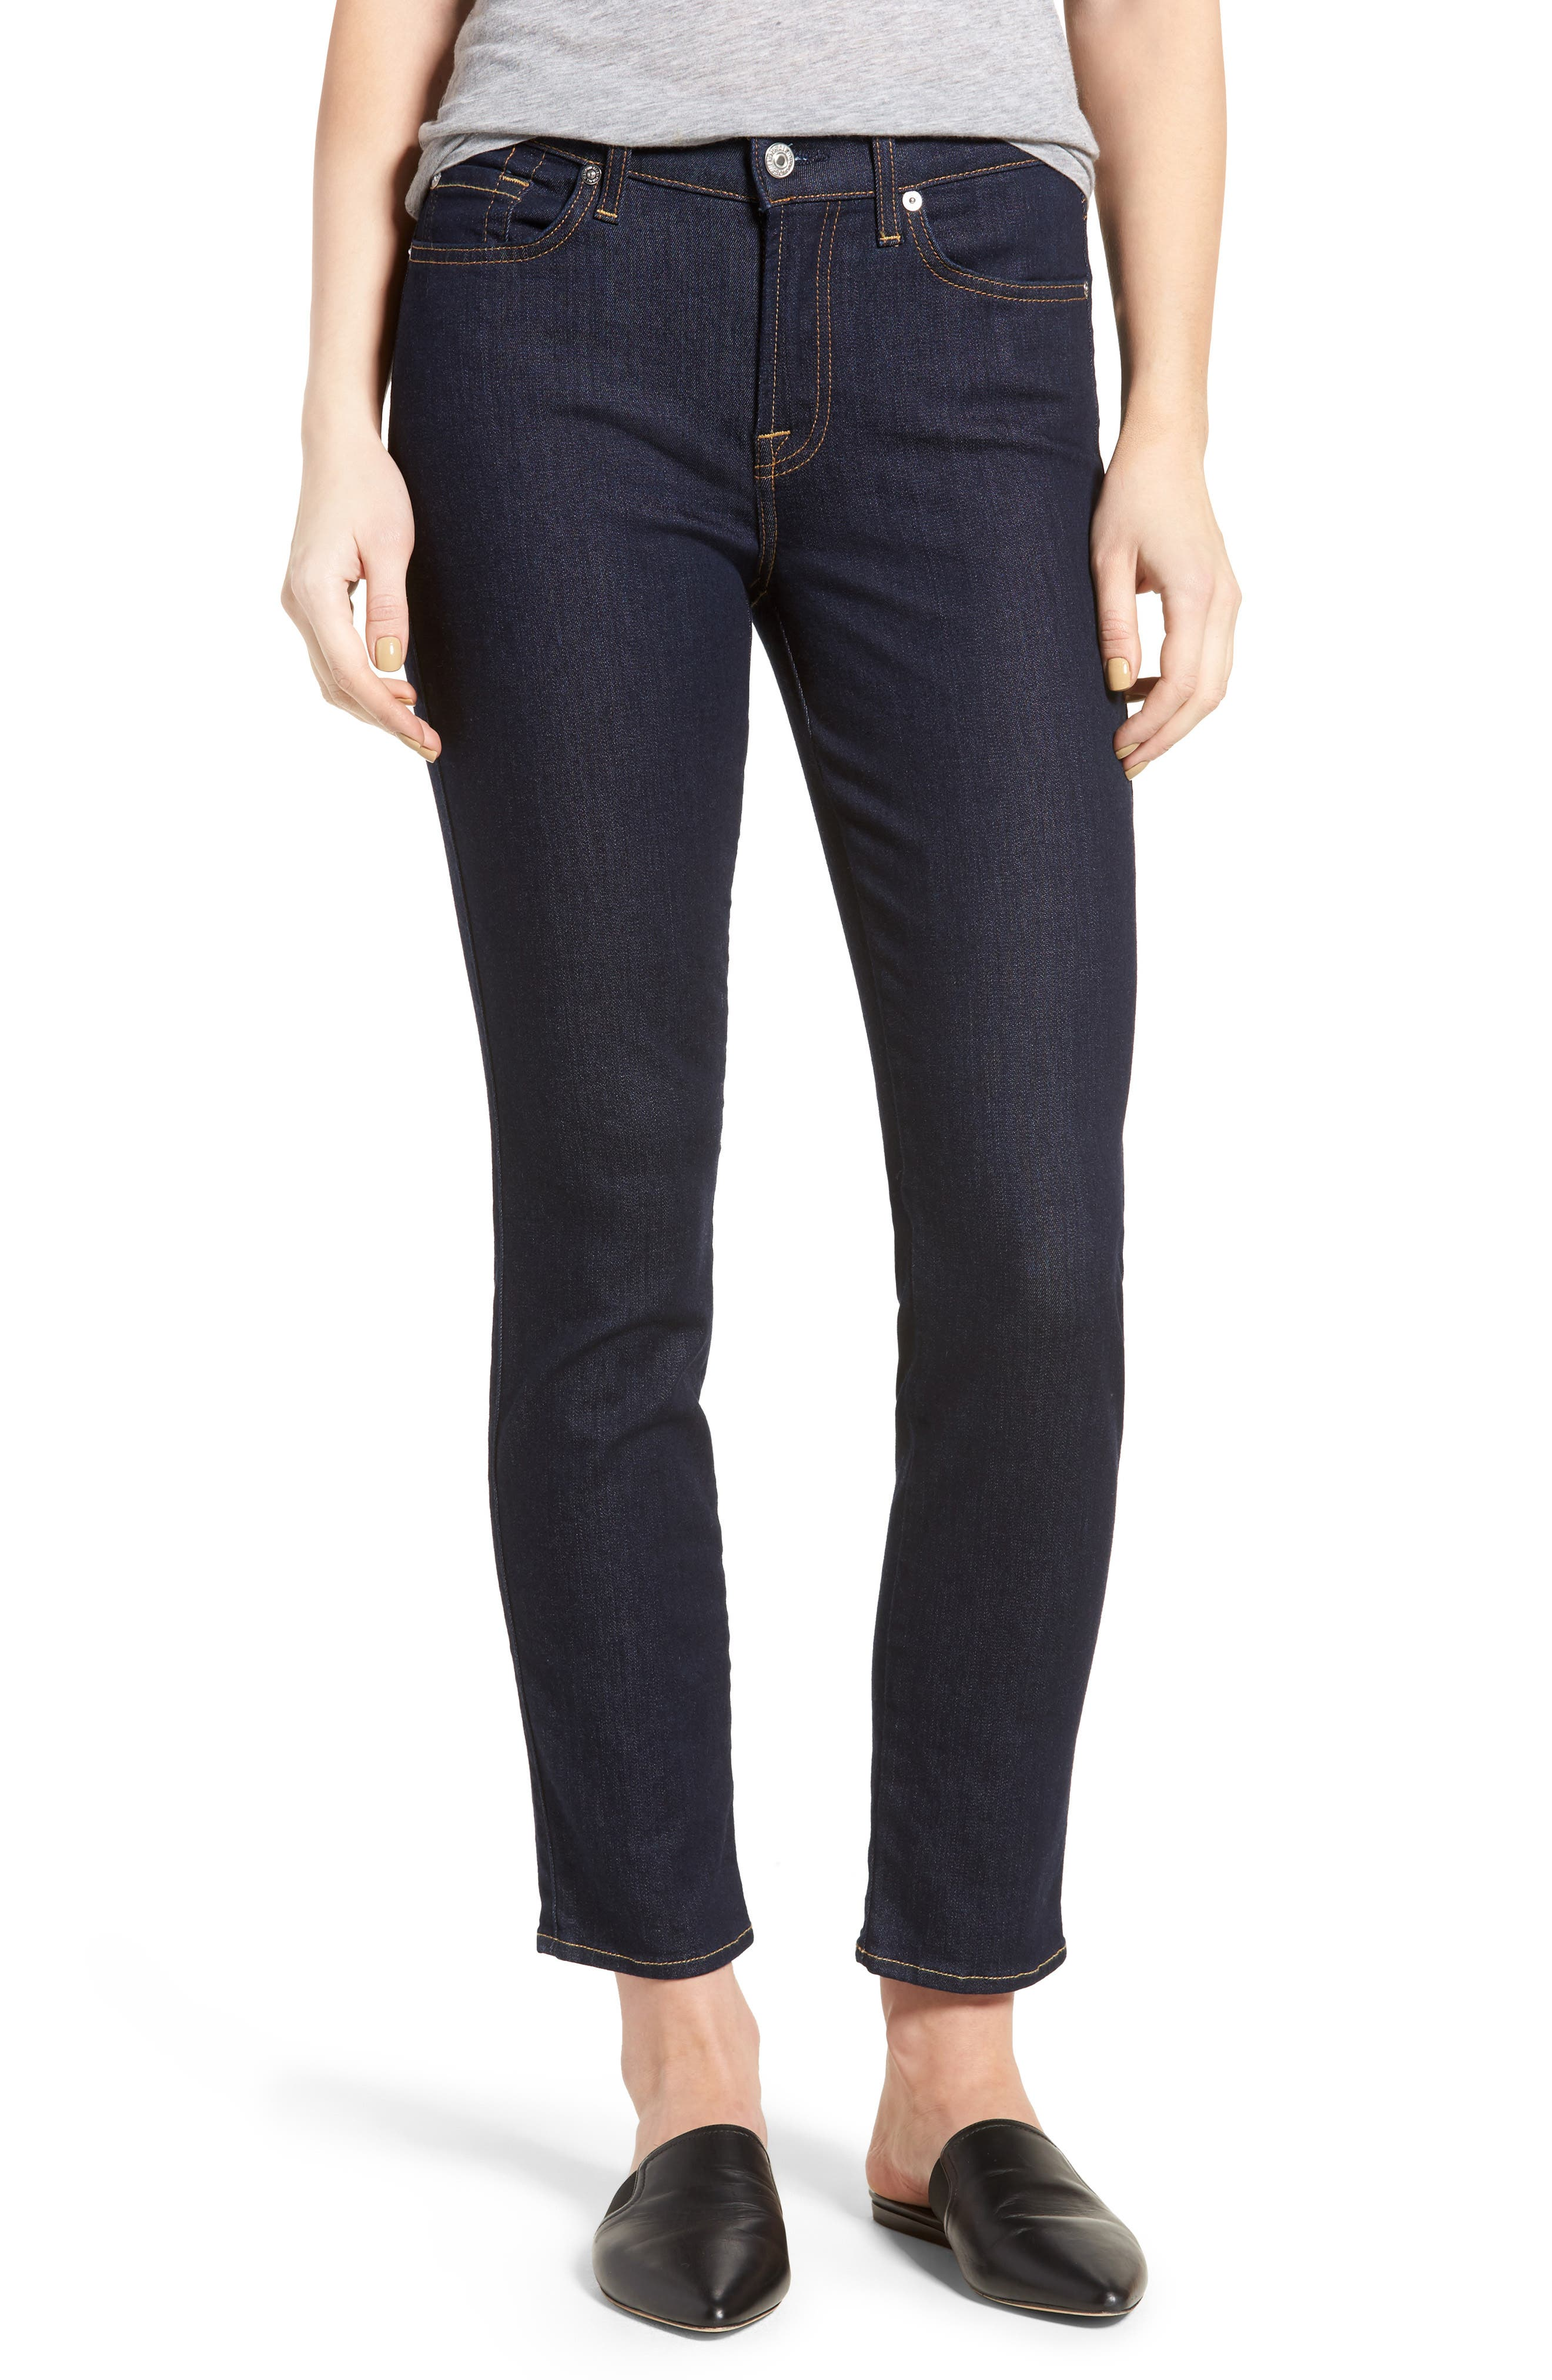 b(air) Roxanne Ankle Skinny Jeans,                         Main,                         color, 401